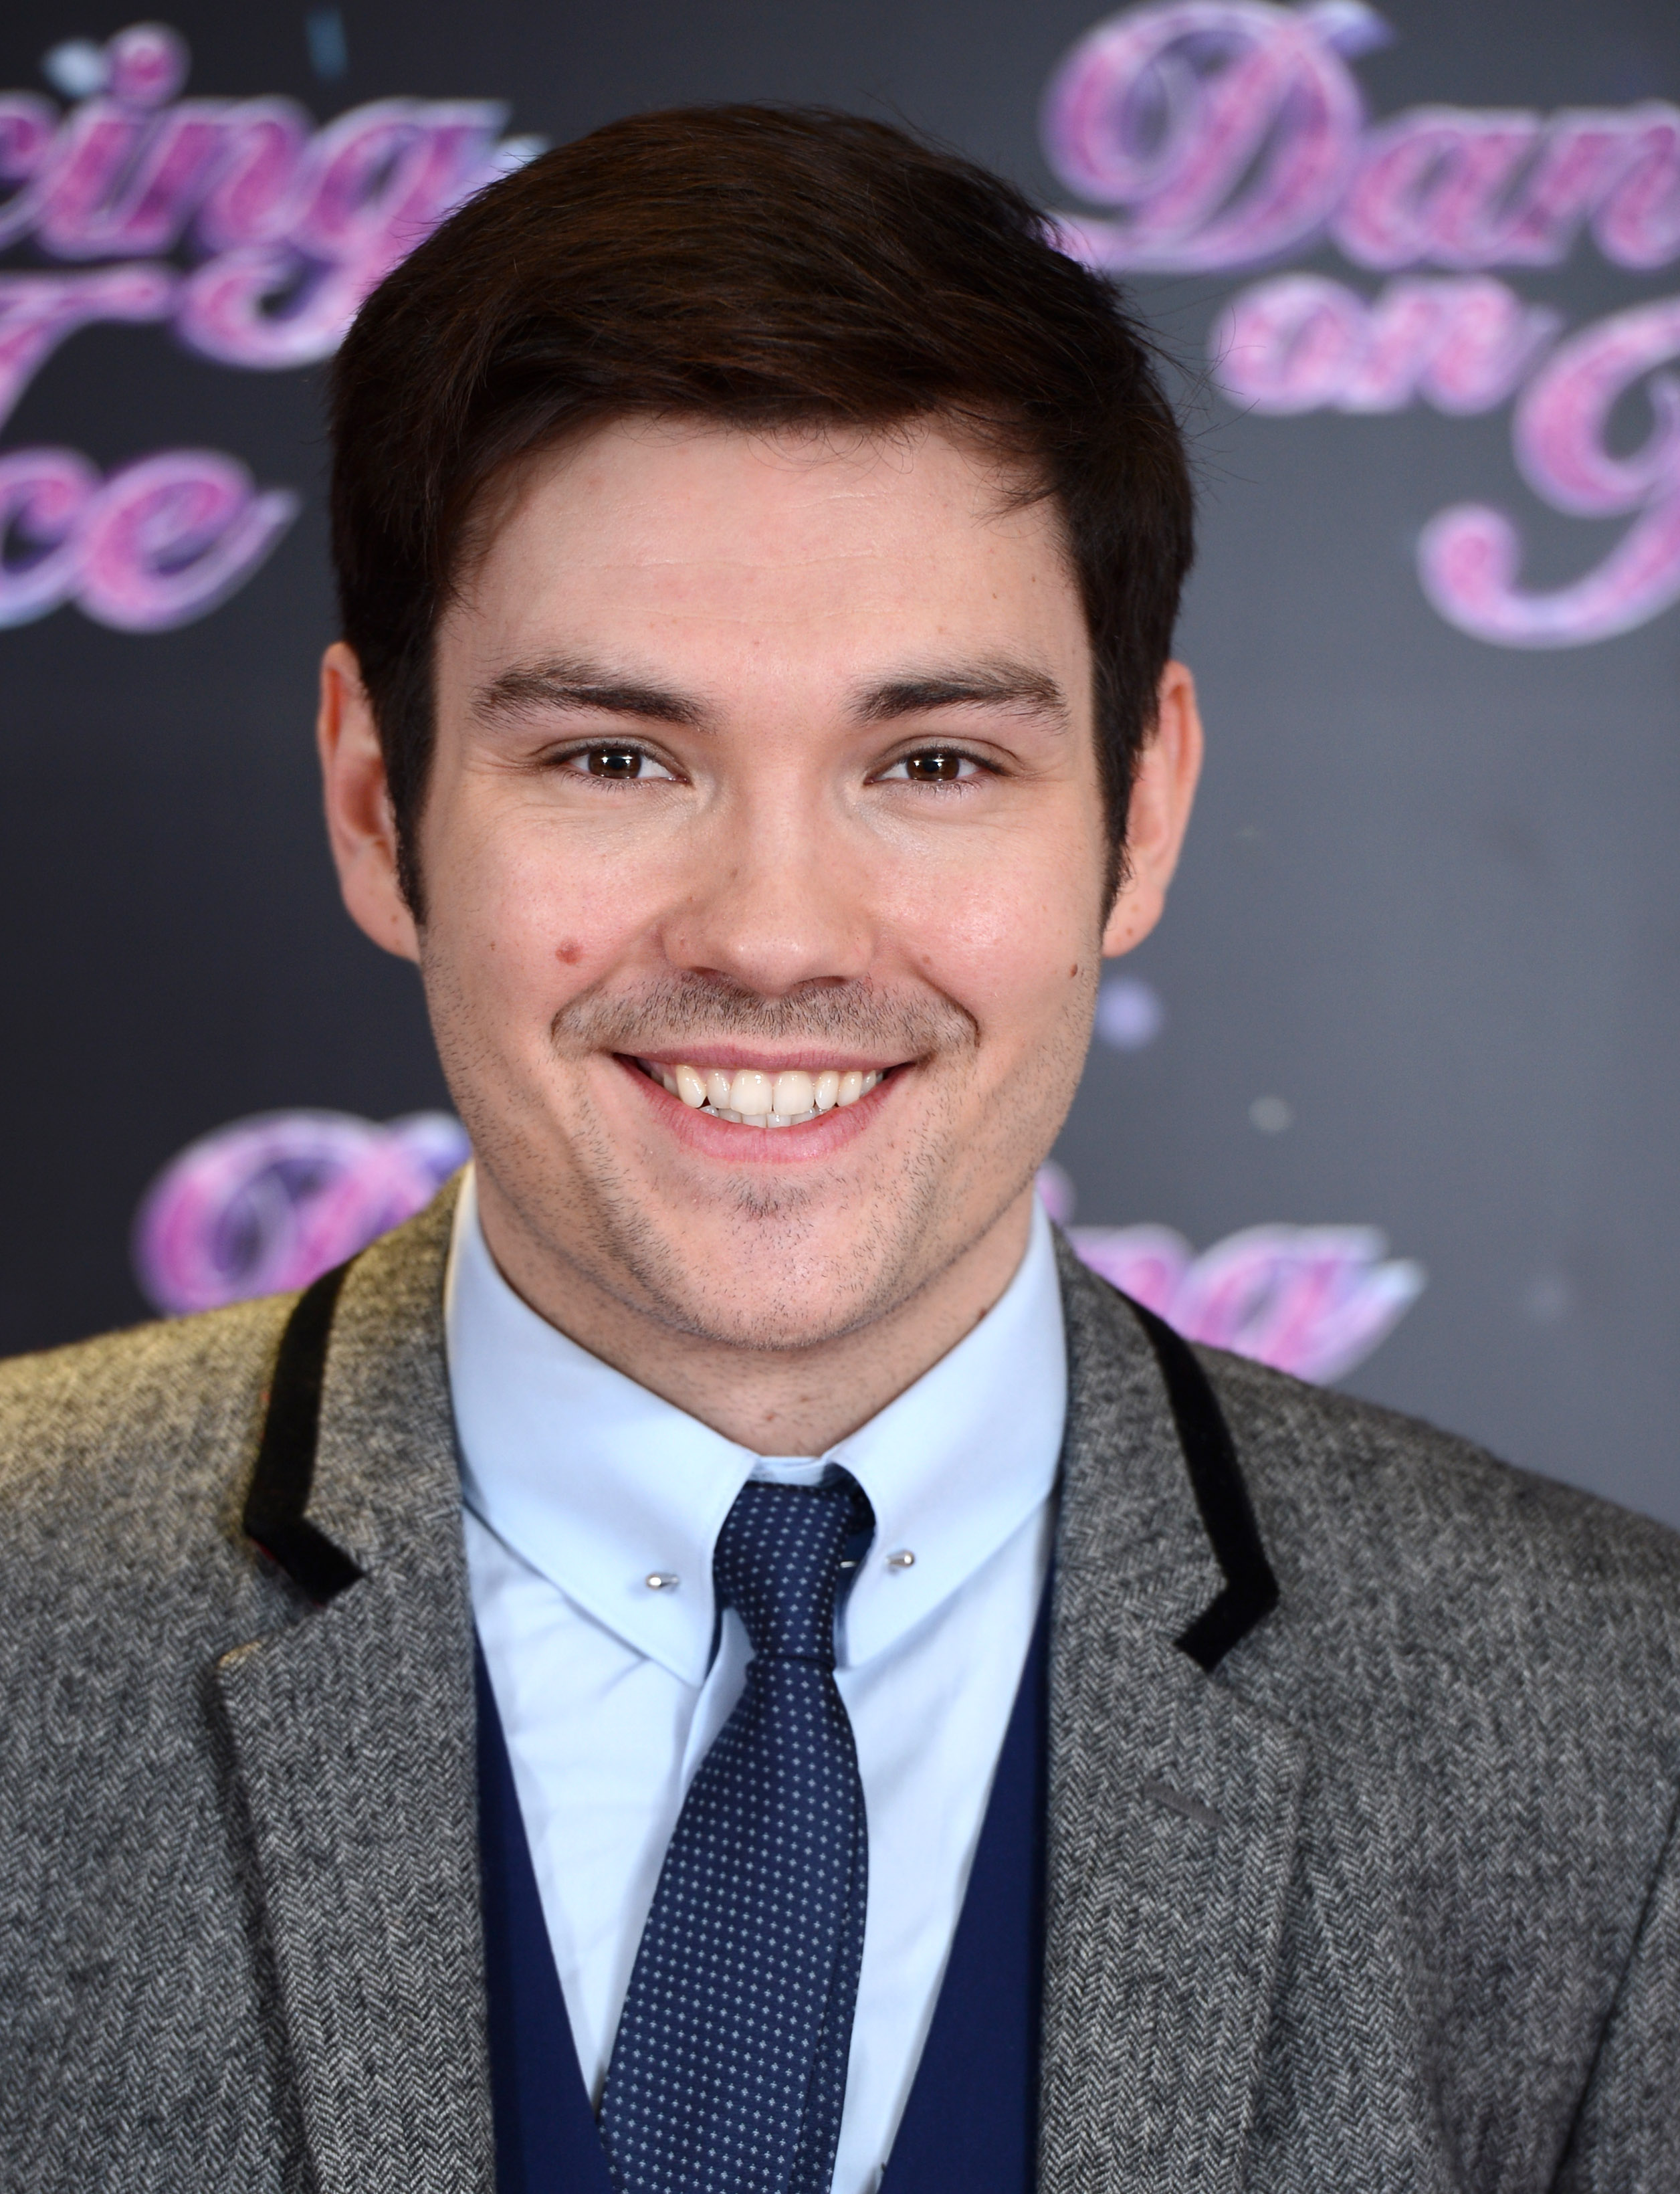 """LONDON, ENGLAND - JANUARY 02: Sam Attwater attends the series launch photocall for """"Dancing on Ice"""" held at the London Studios on January 2, 2014 in London, England. (Photo by Karwai Tang/Getty Images)"""